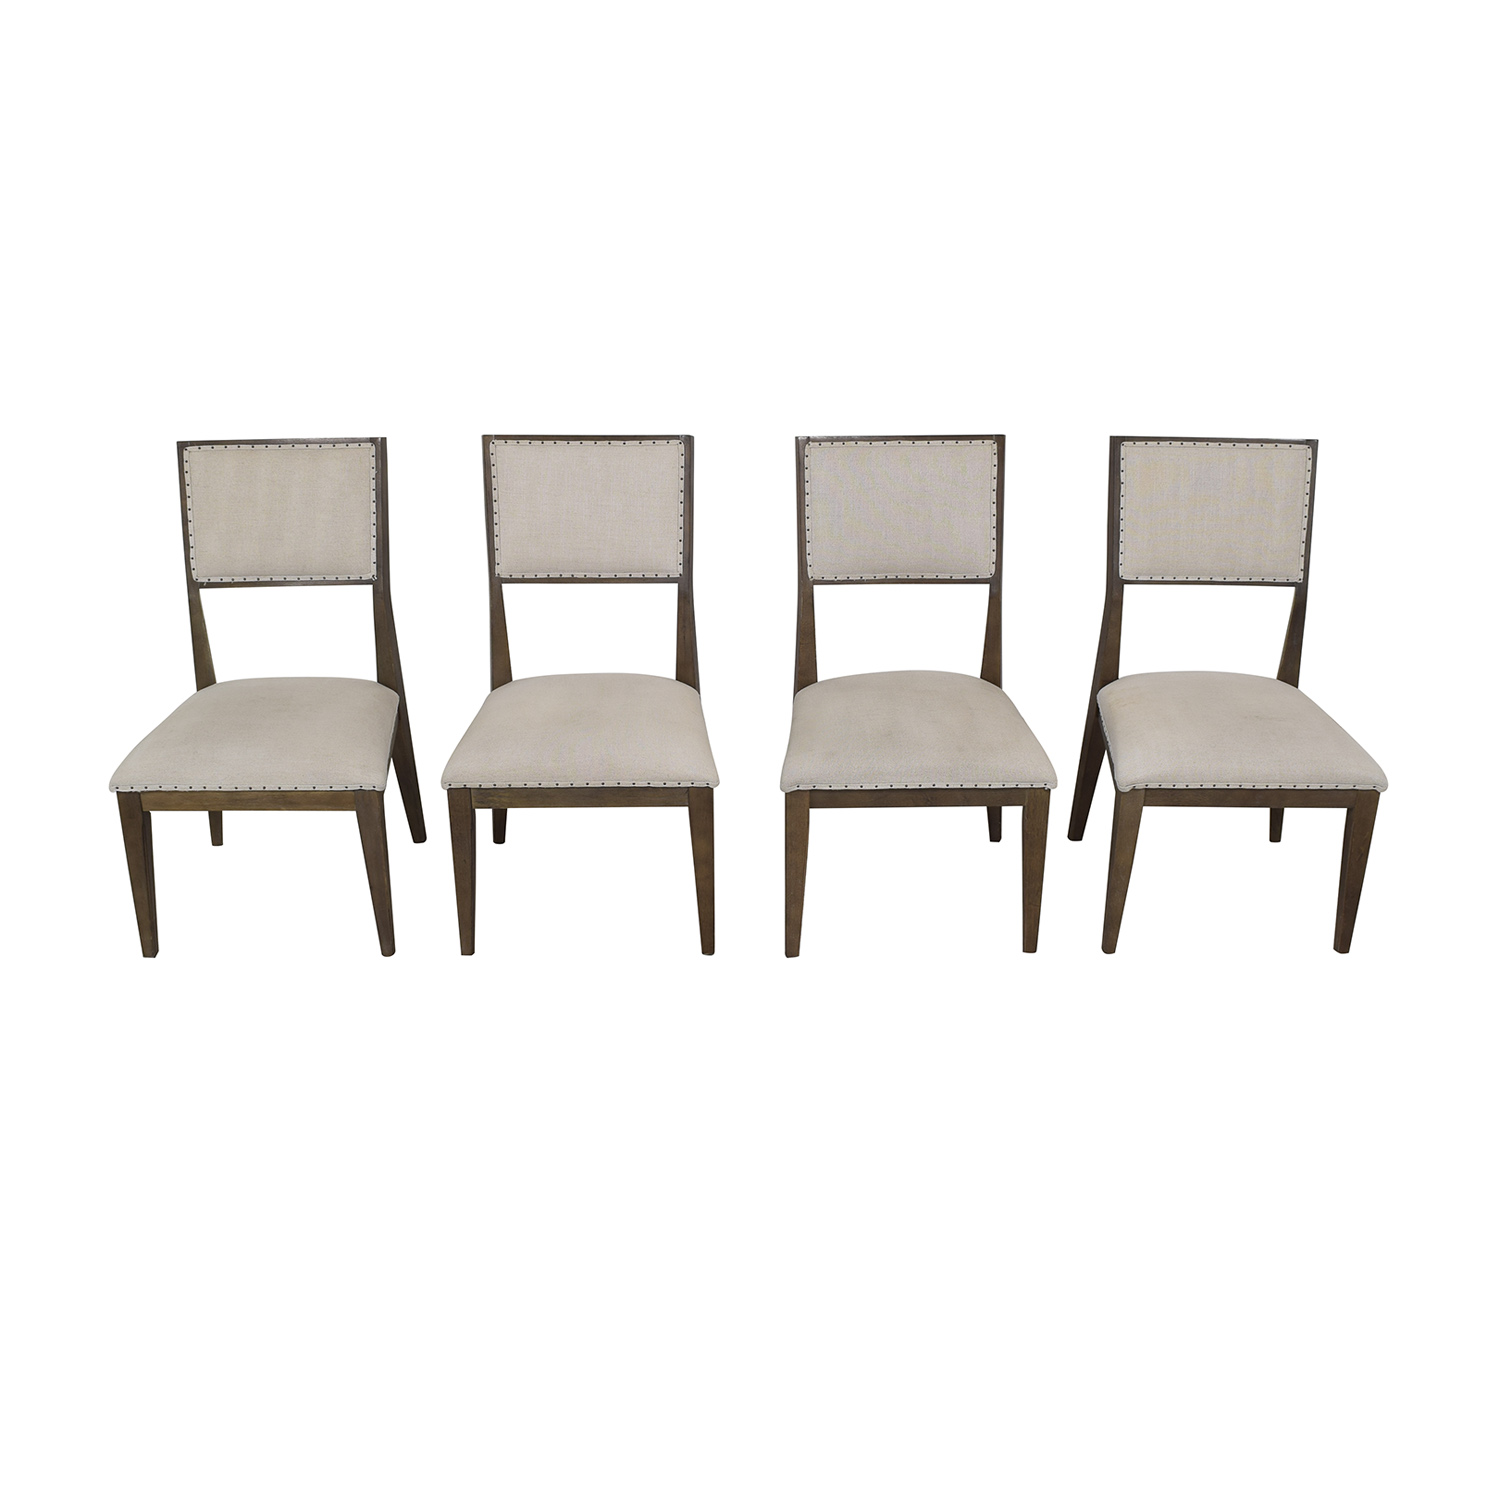 Universal Furniture Universal Furniture Playlist Dining Chairs nyc